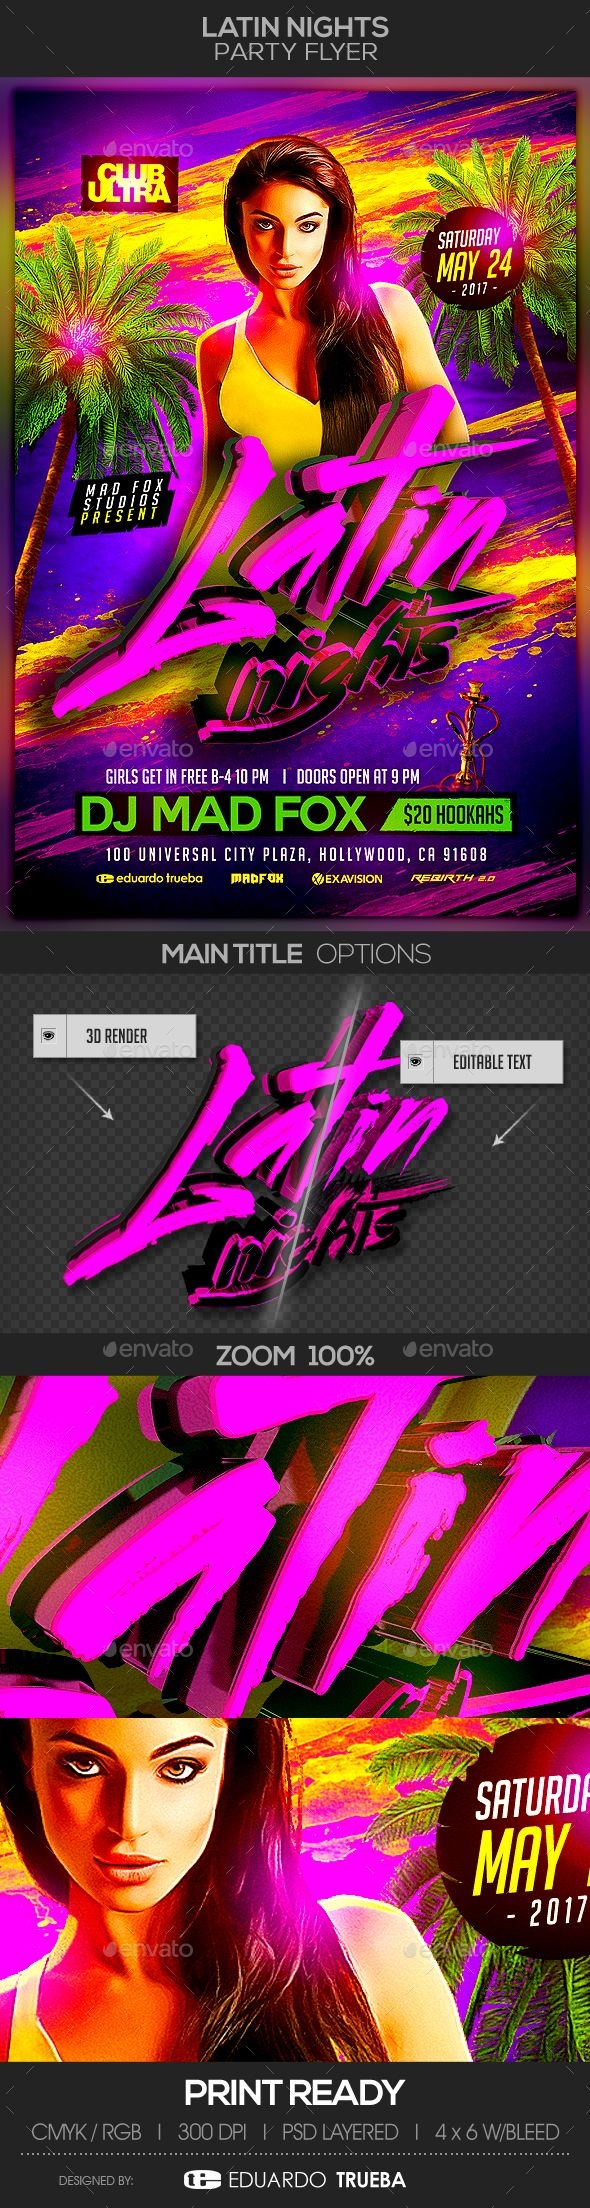 Latin Nights #Party #Flyer - Clubs & Parties Events Download here: https://graphicriver.net/item/latin-nights-party-flyer/19541841?ref=alena994